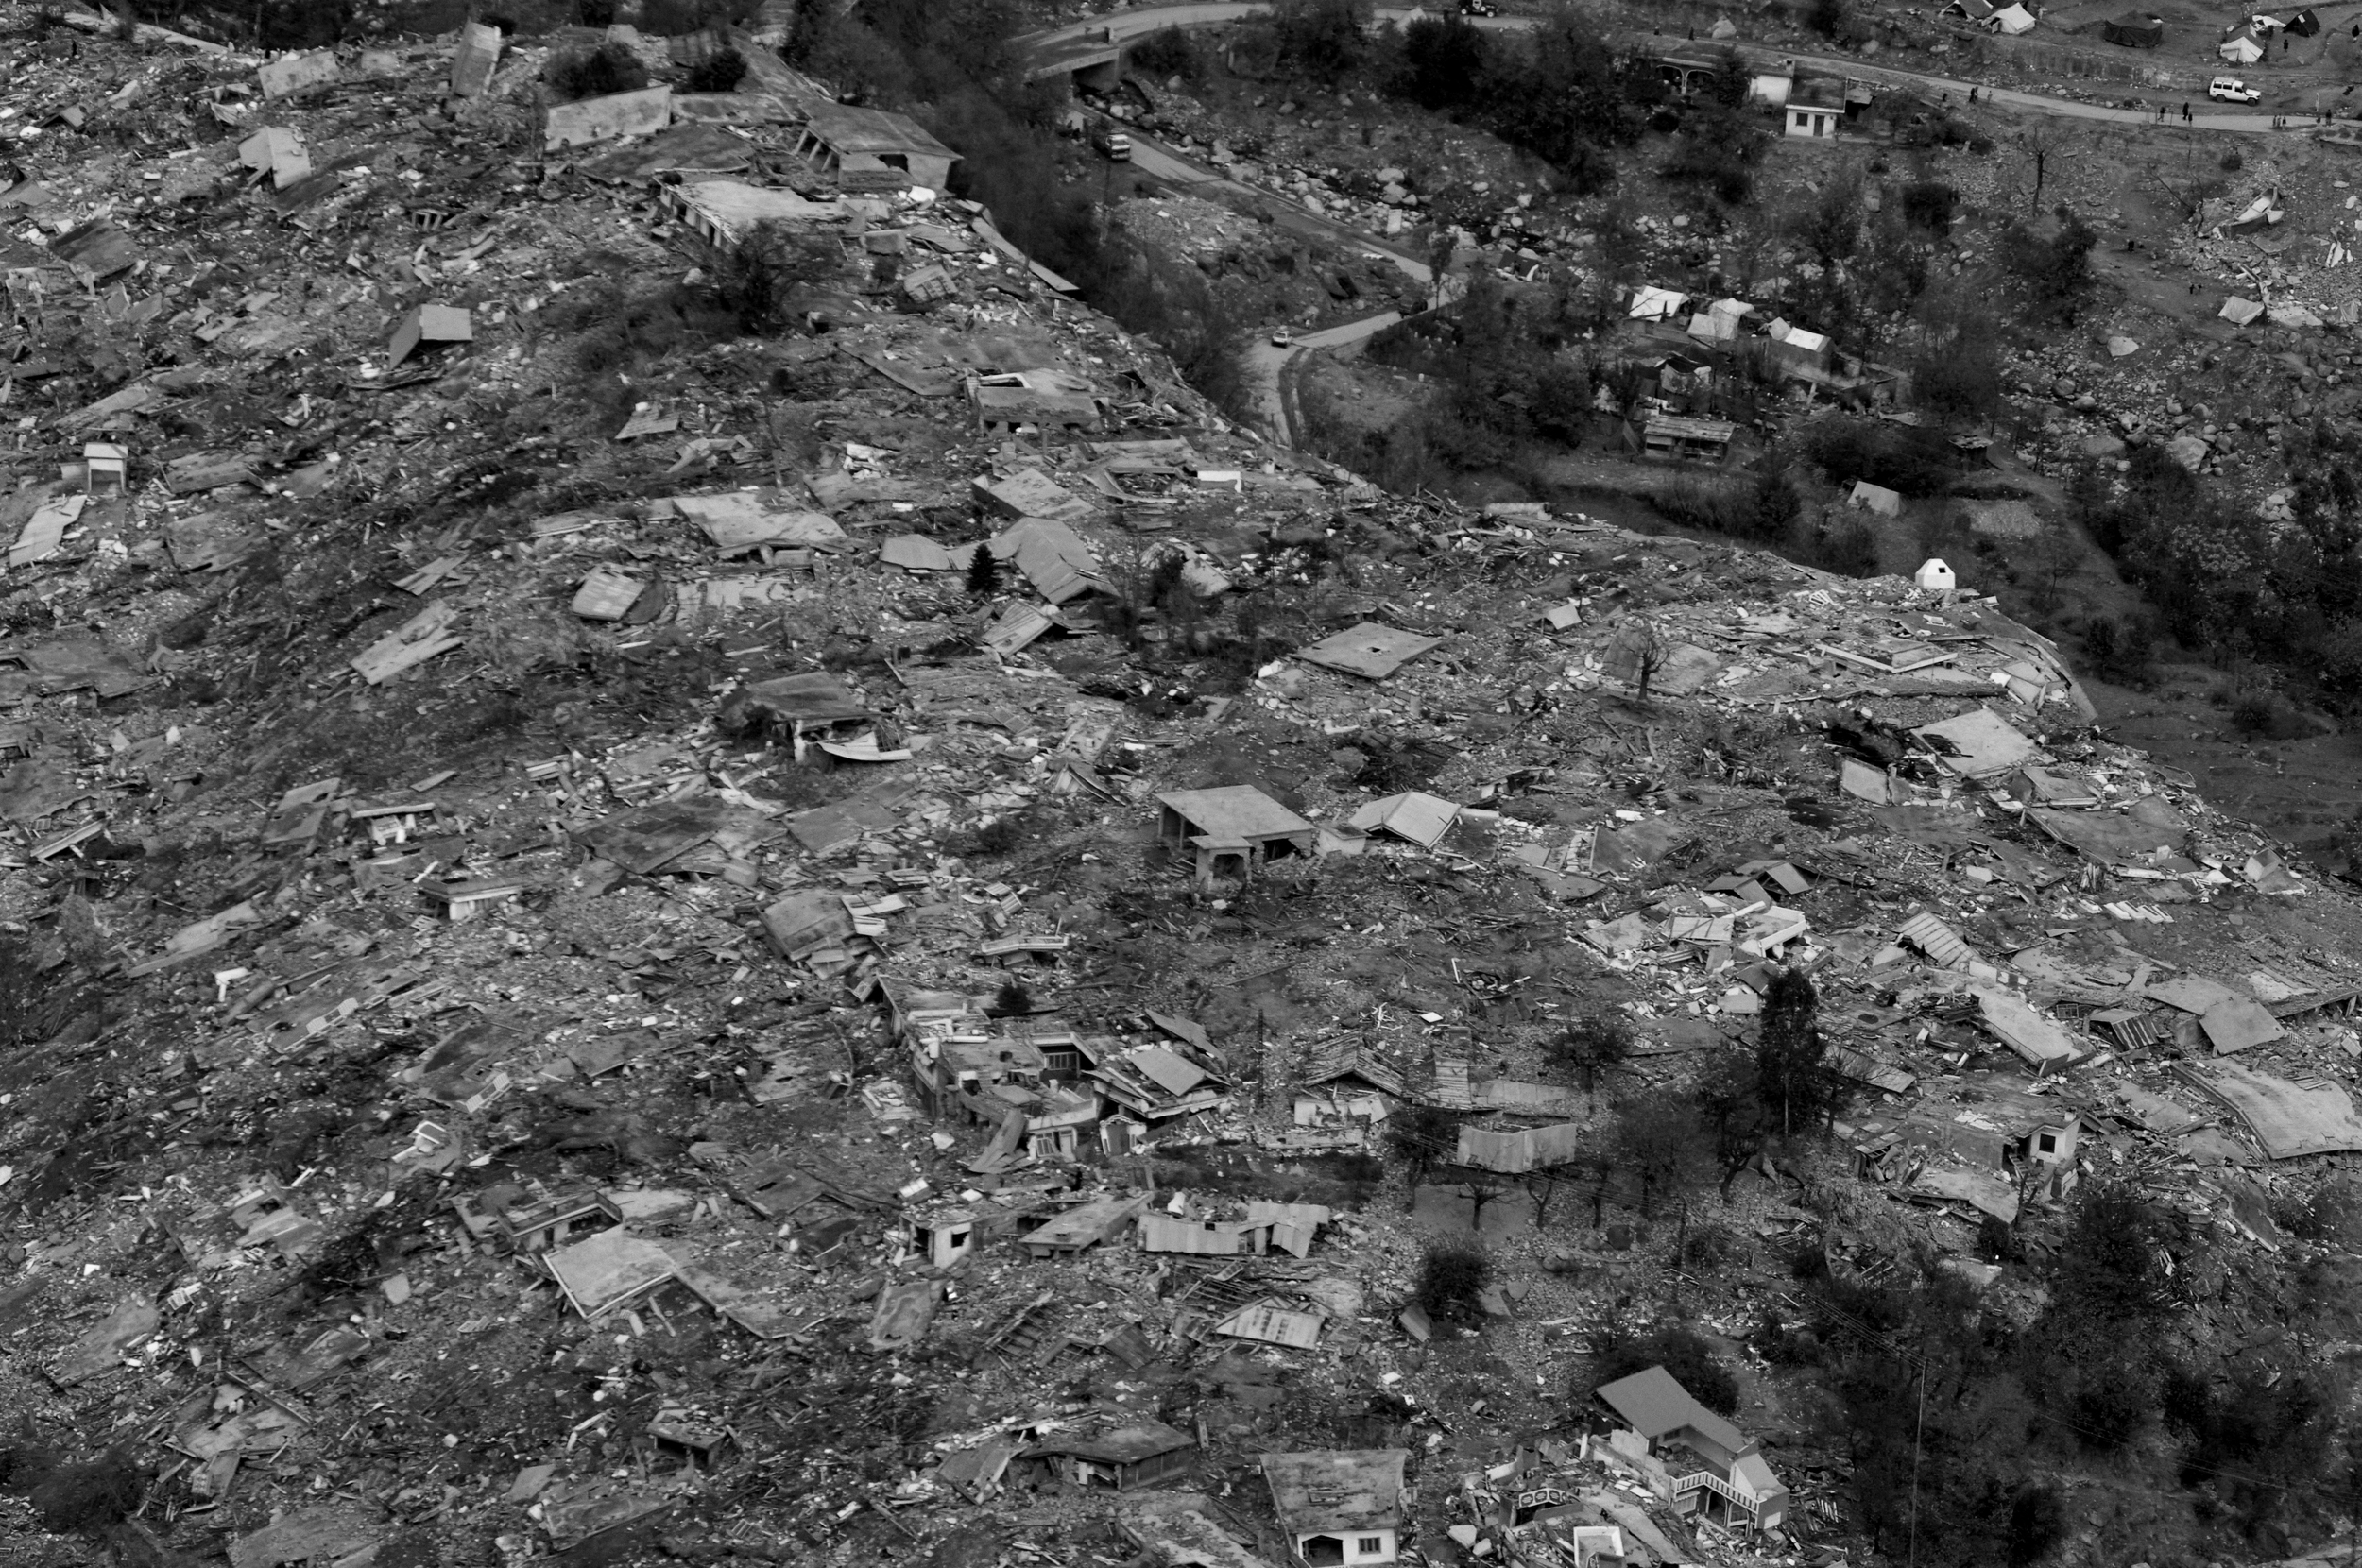 Aerial view of destroyed villages and towns around Balakot, NWFP, Pakistan, November 12, 2005. (Photo / Mark Pearson) The massive October earthquake in Kashmir affected one of the highest and most remote places on earth. Difficult terrain slowed the relief effort and the largest scale humanitarian air operations since the Berlin blockade began.